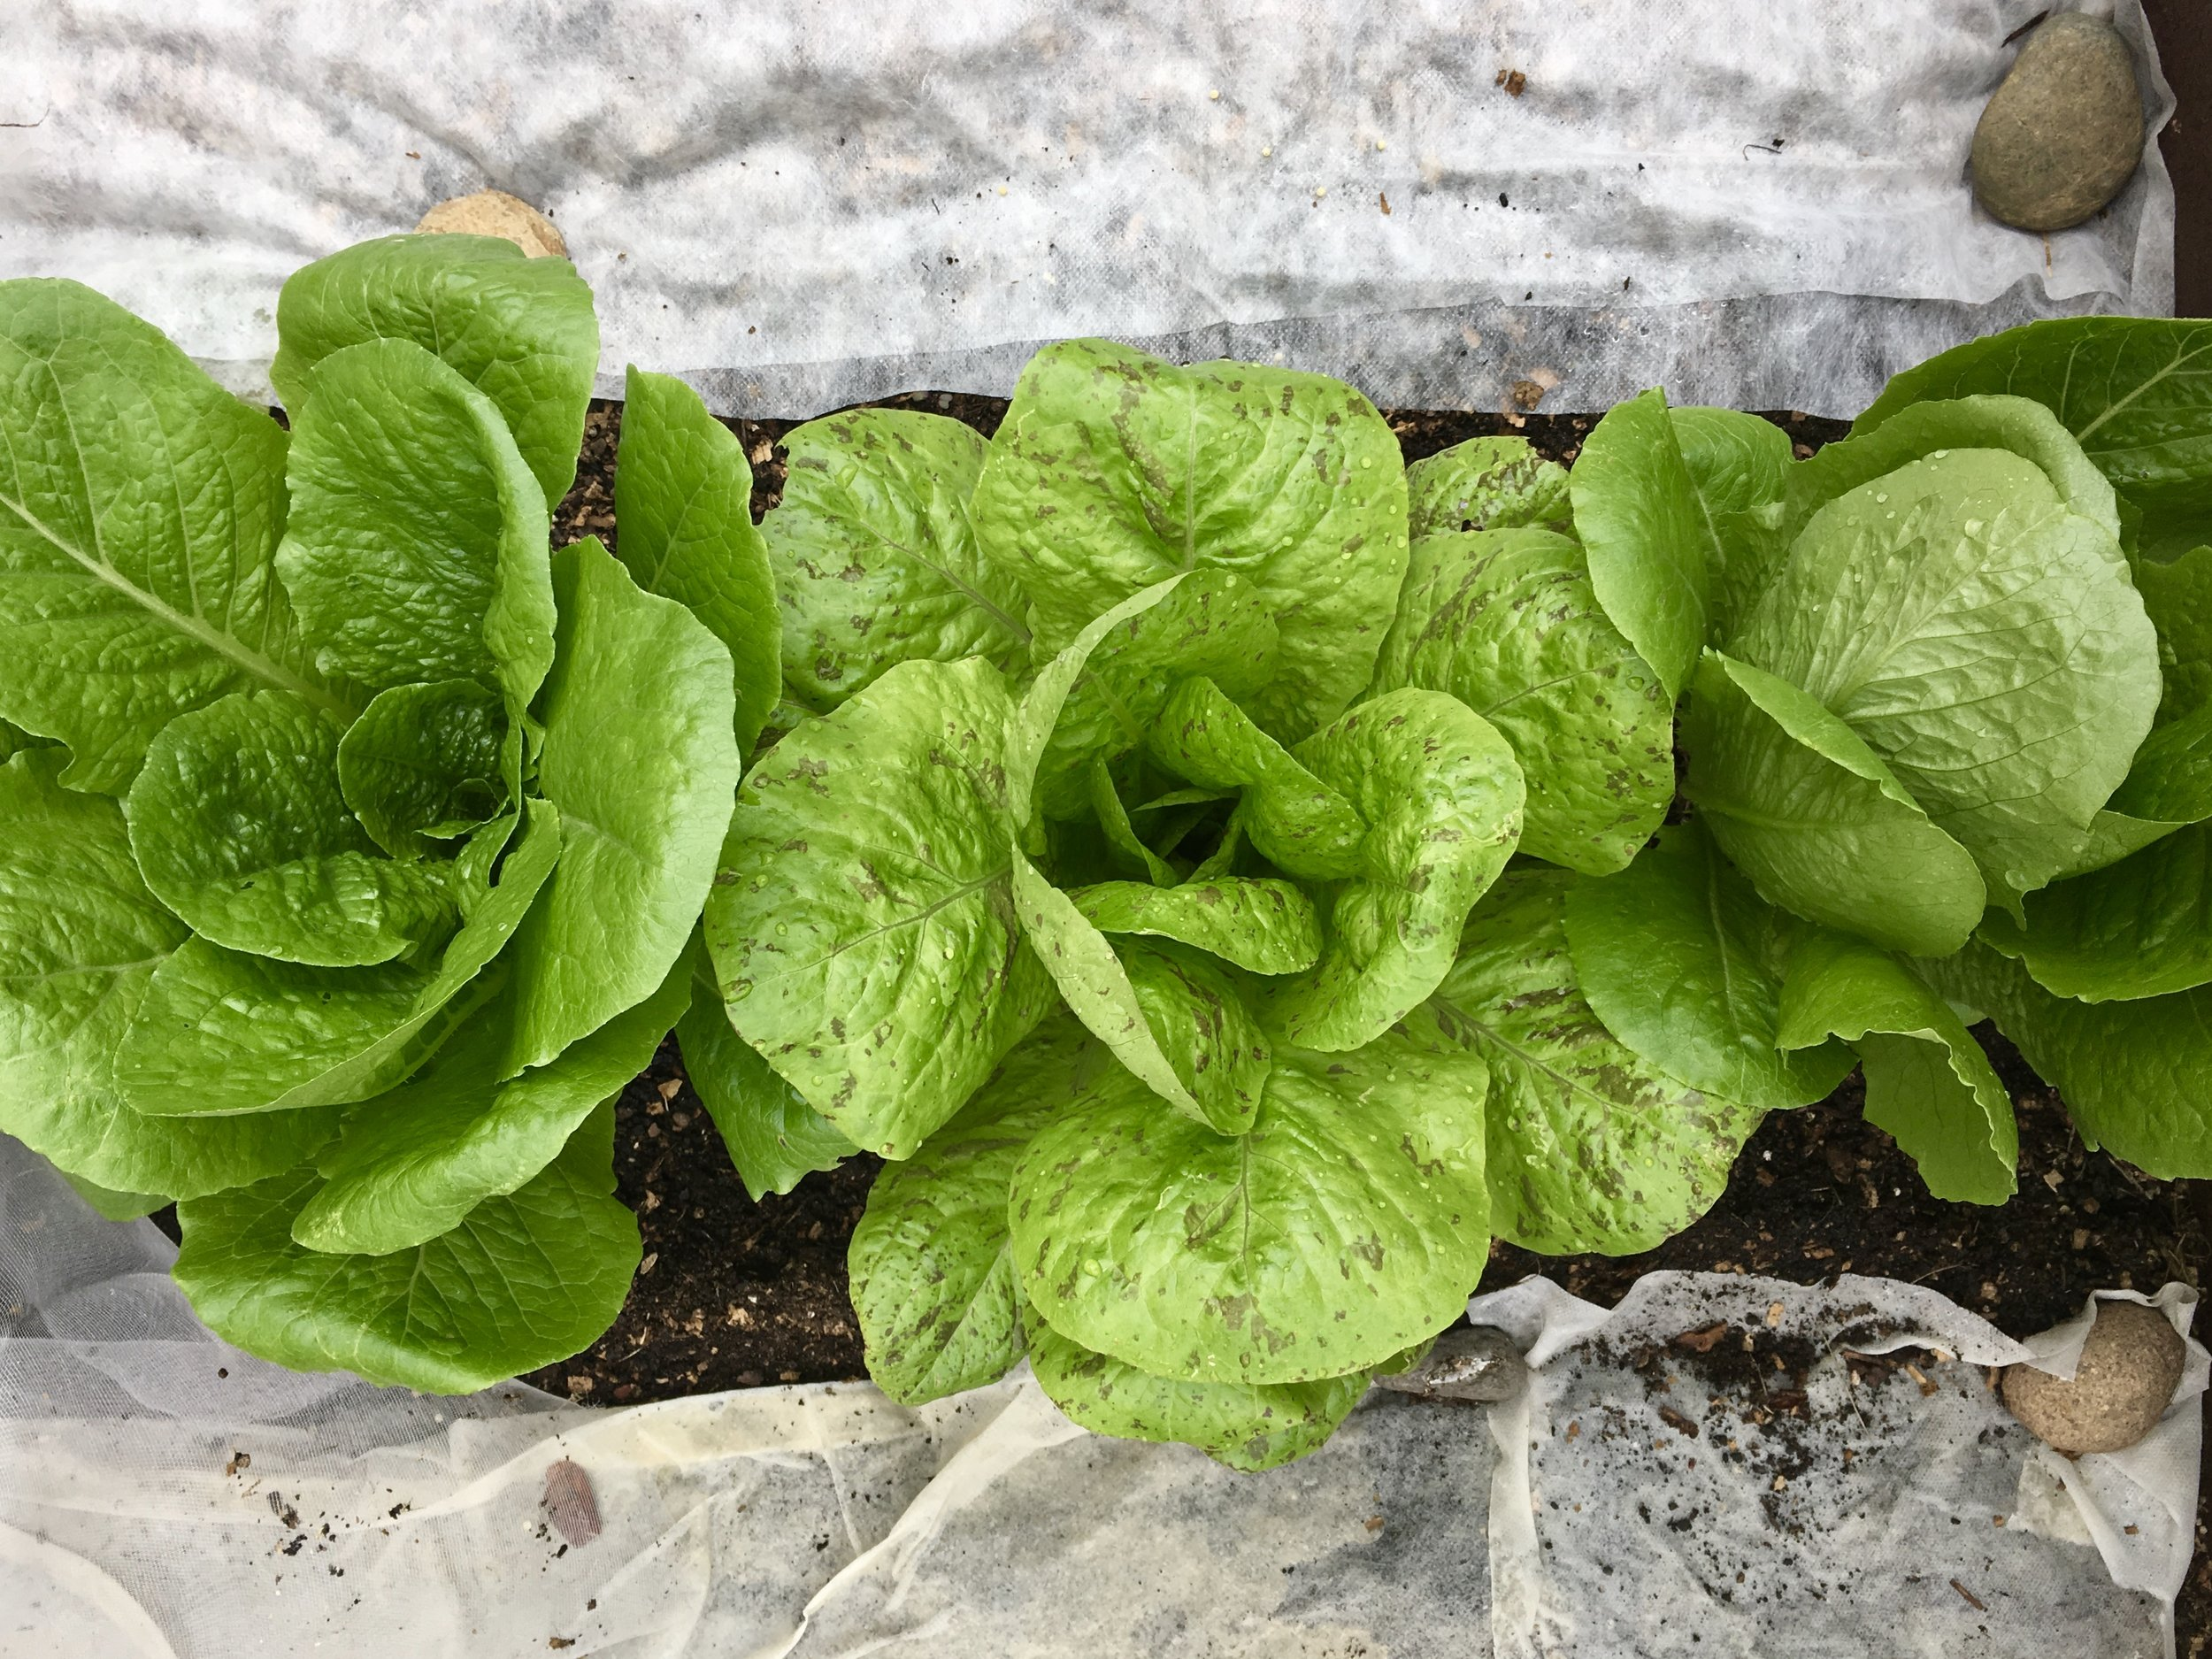 Romaine lettuce from transplants with seeded lettuce nearby.